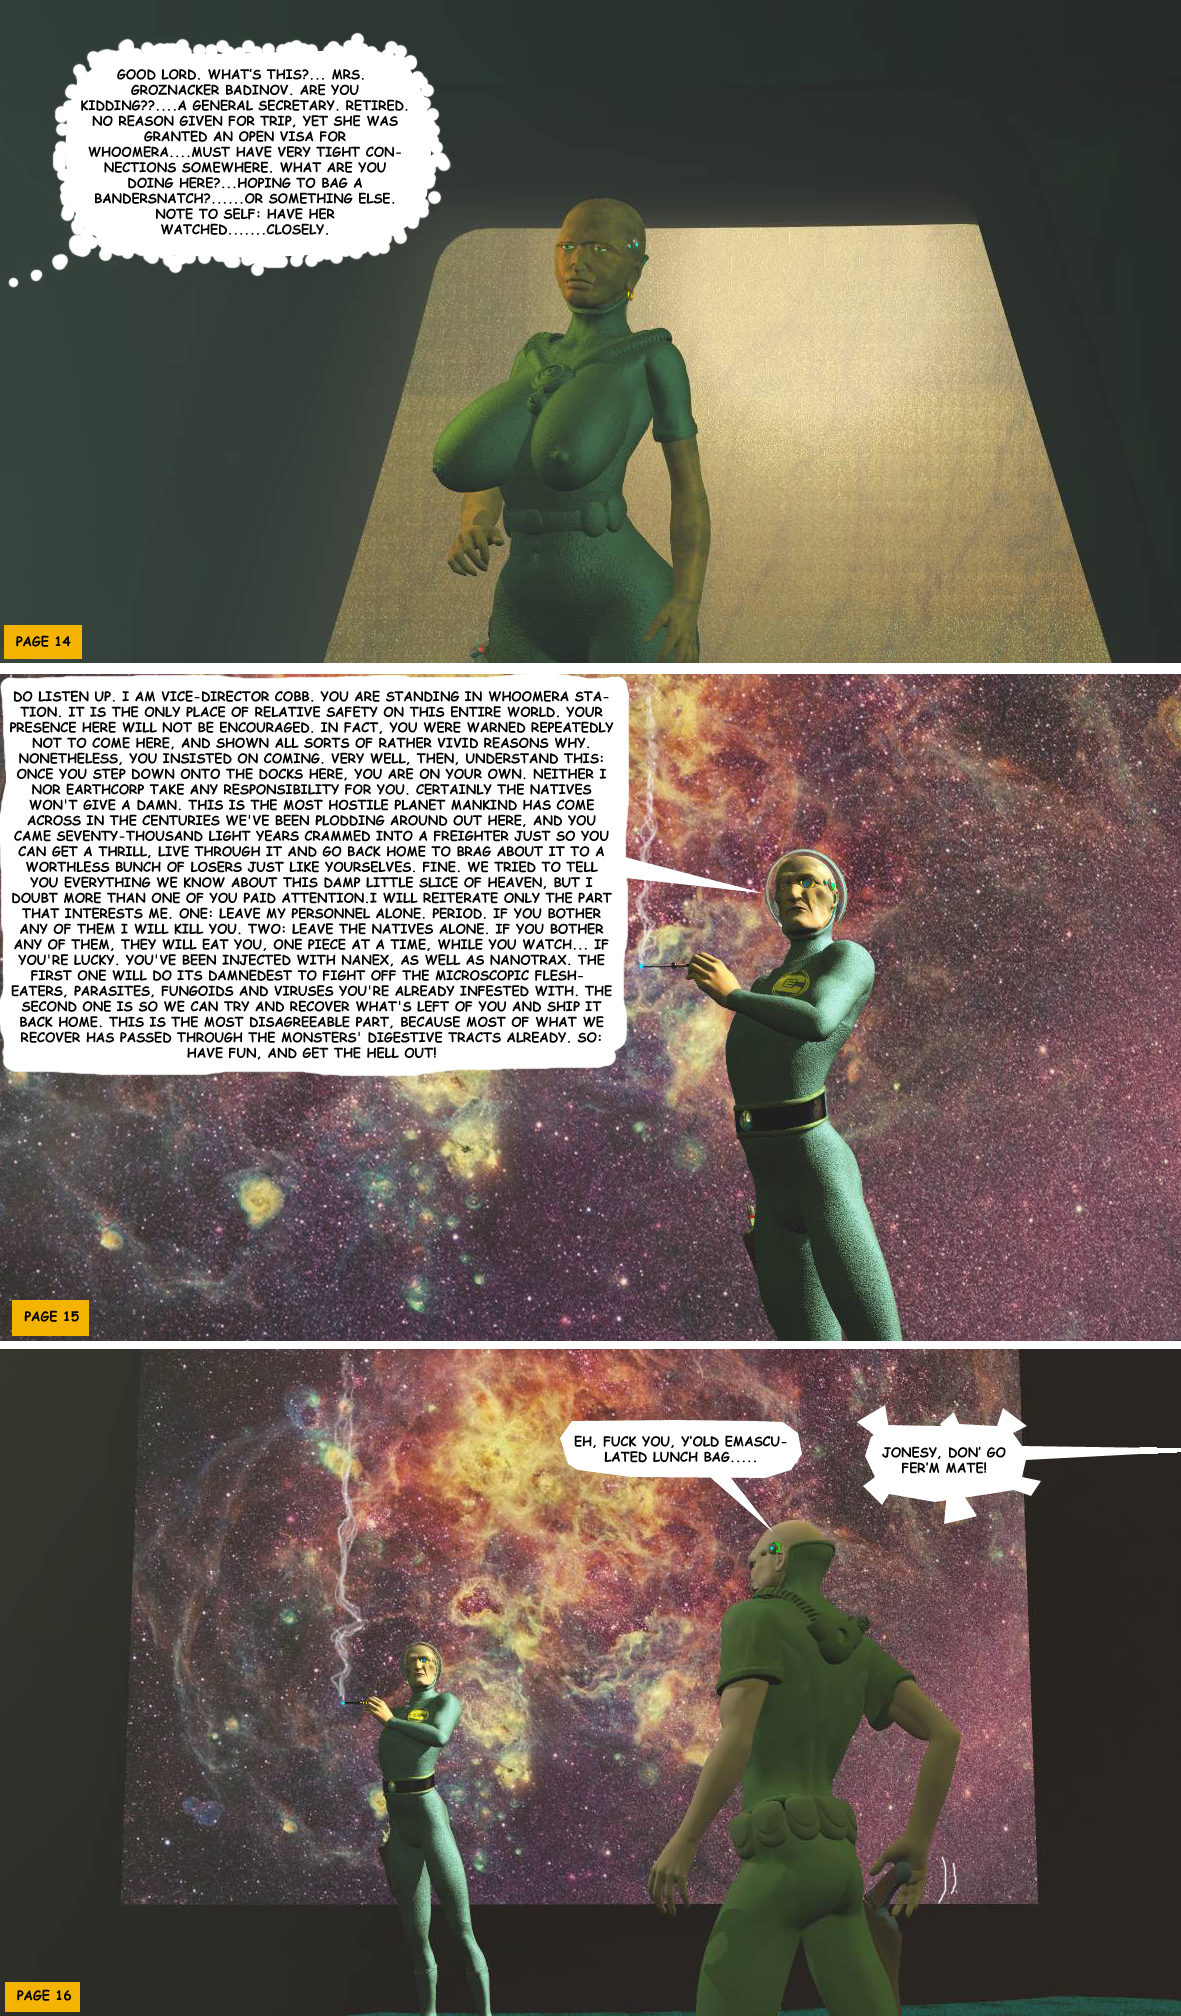 STORM OVER WHOOMERA: PAGE 6